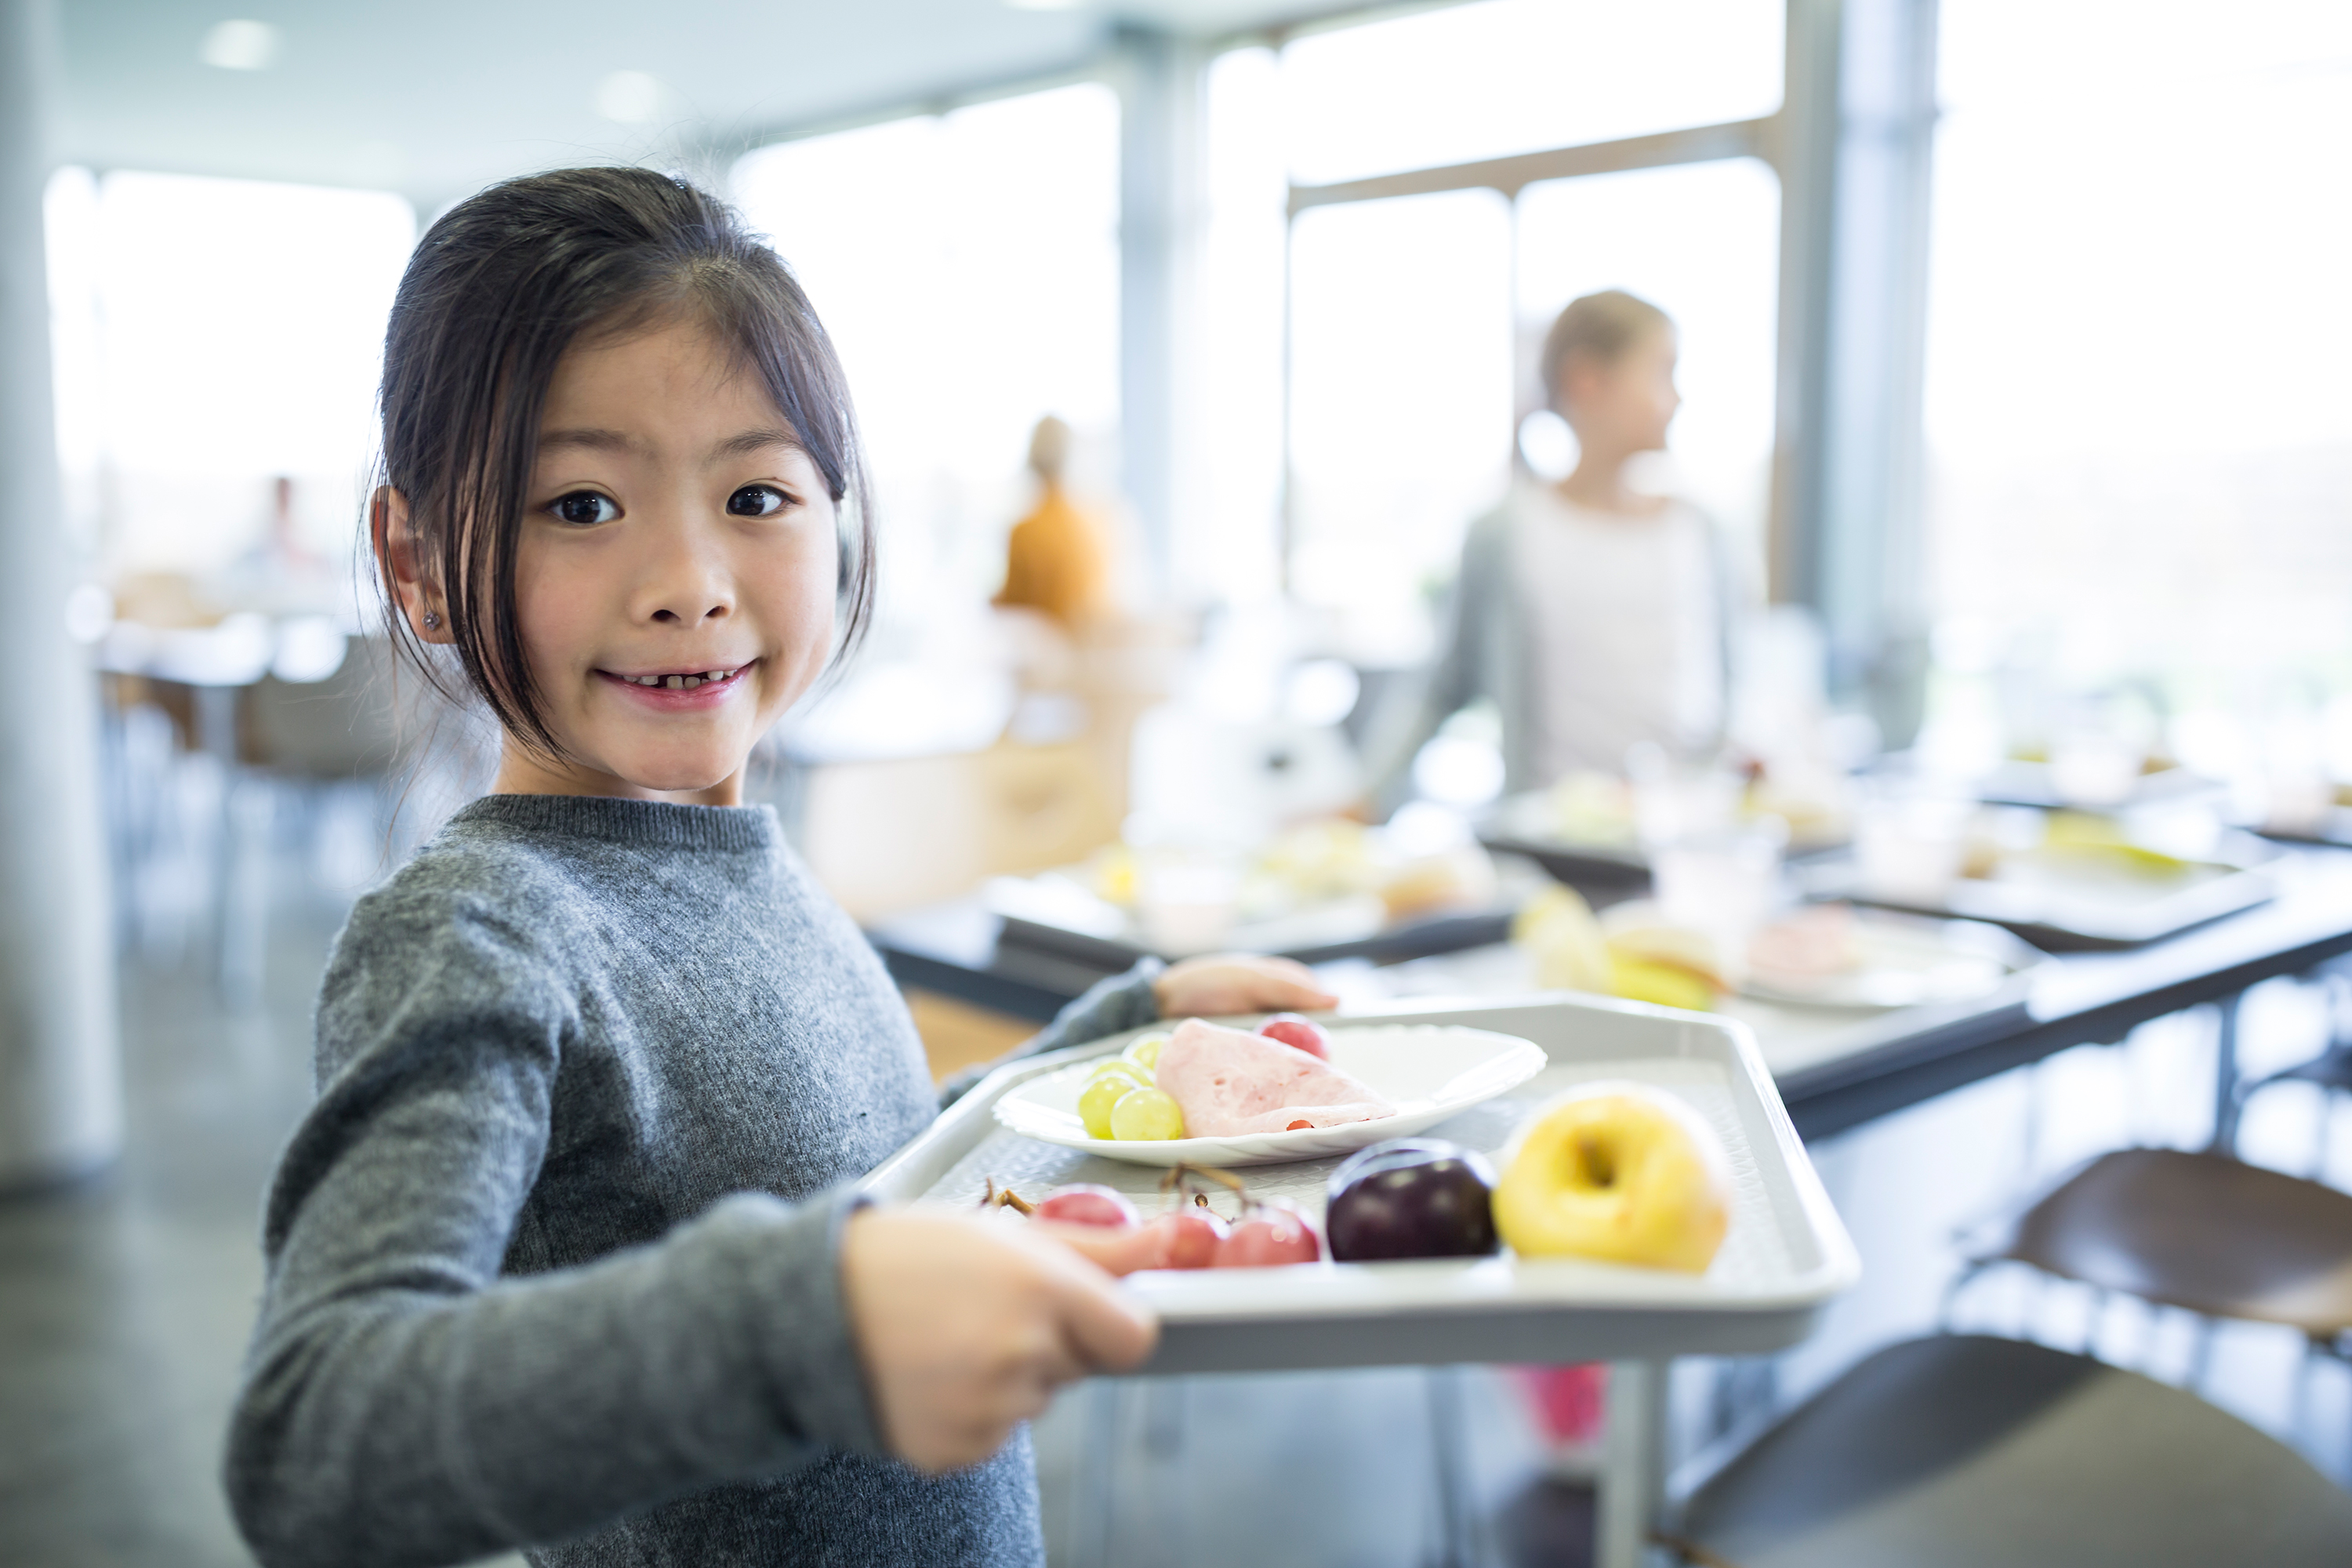 More School Lunchrooms Across the Nation Will Start Cooking from Scratch Thanks to a USDA Federal Grant